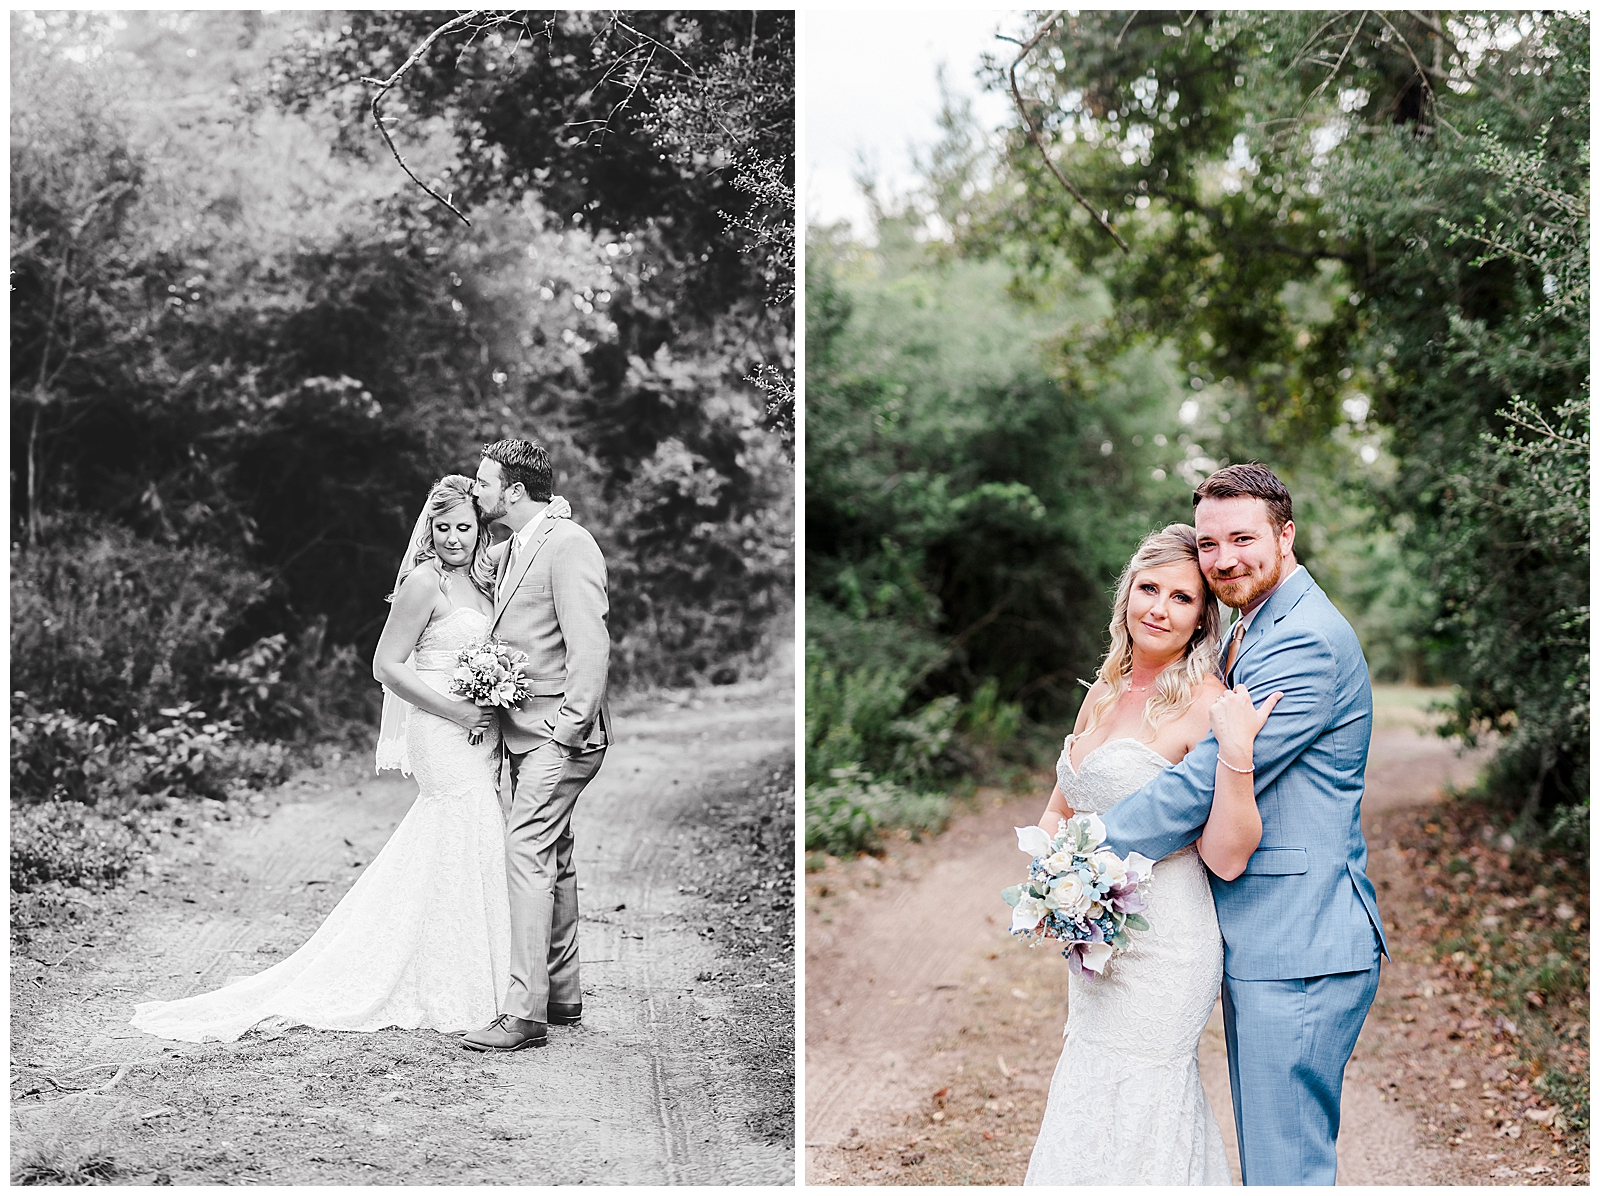 Jessica & Ryan Vick Country Pavilion Wedding with Rachel Driskell Photography